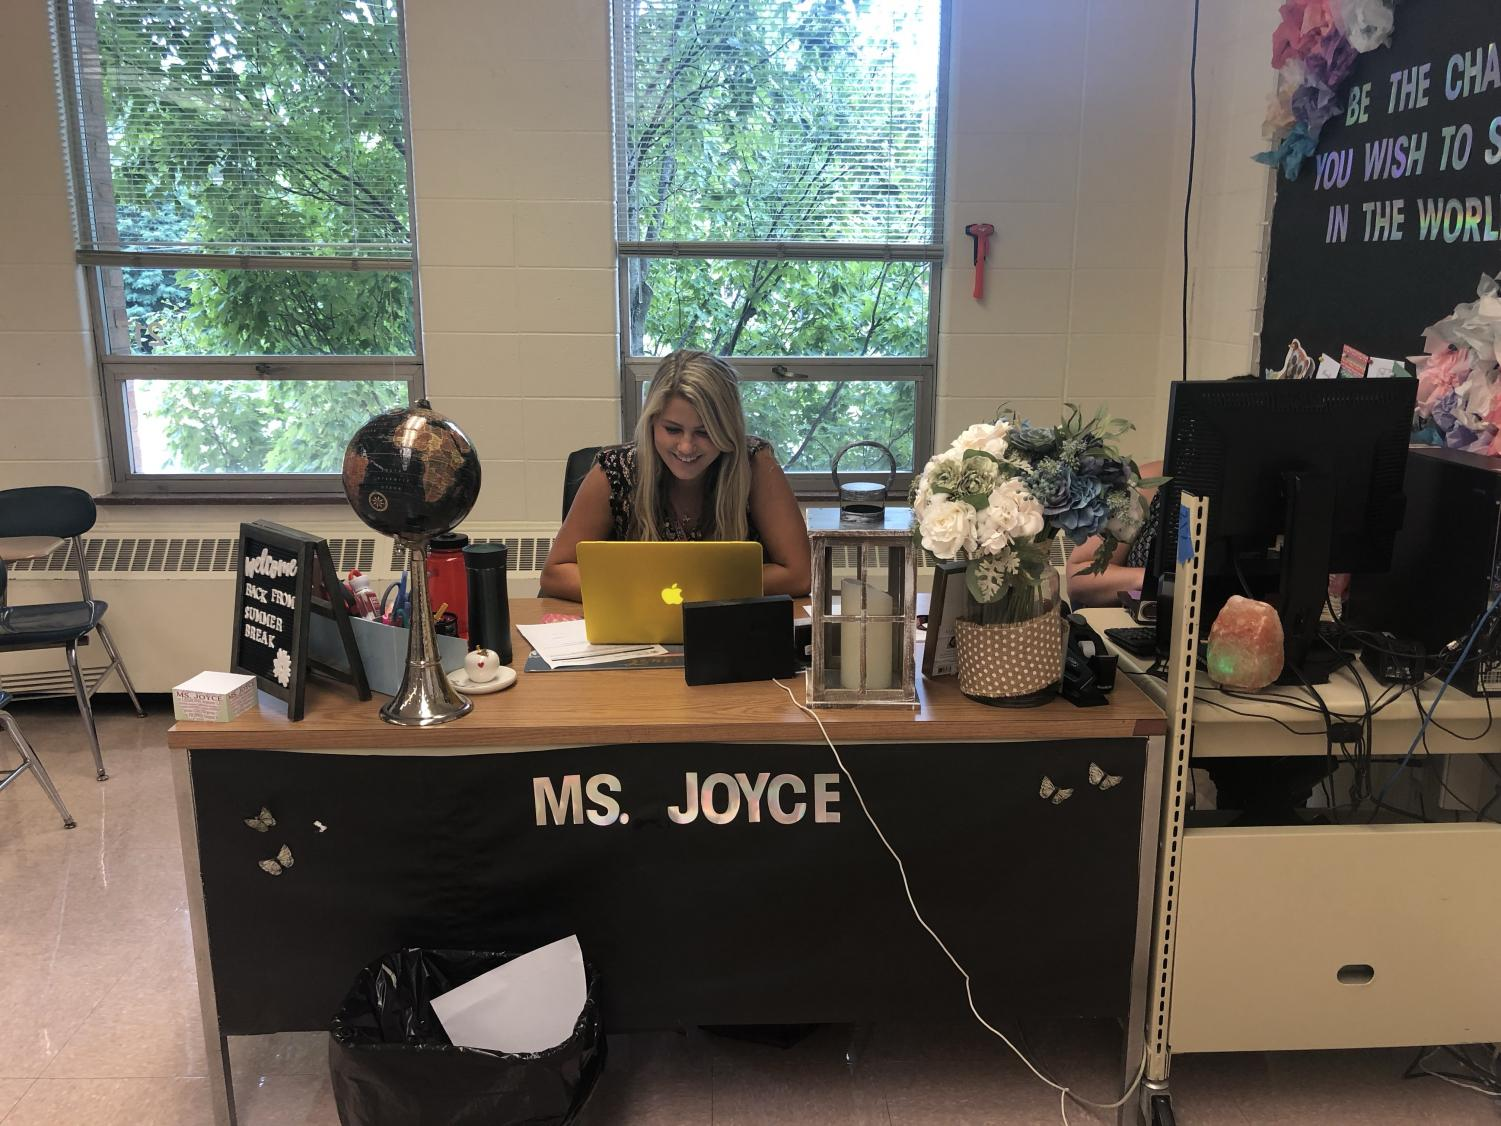 Joyce spends time during her off periods preparing for upcoming classes and meeting with other teachers. Her classroom is covered with student art and projects, and her desk is decorated as well. The overall environment of the classroom is very inviting for every student.